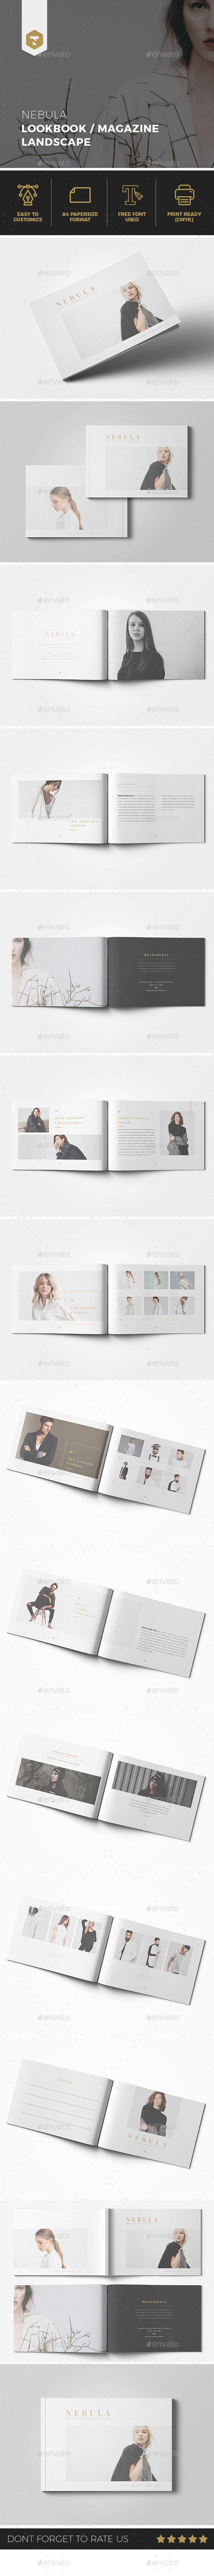 NEBULA Lookbook / Magazine Landscape - Brochures Print Templates